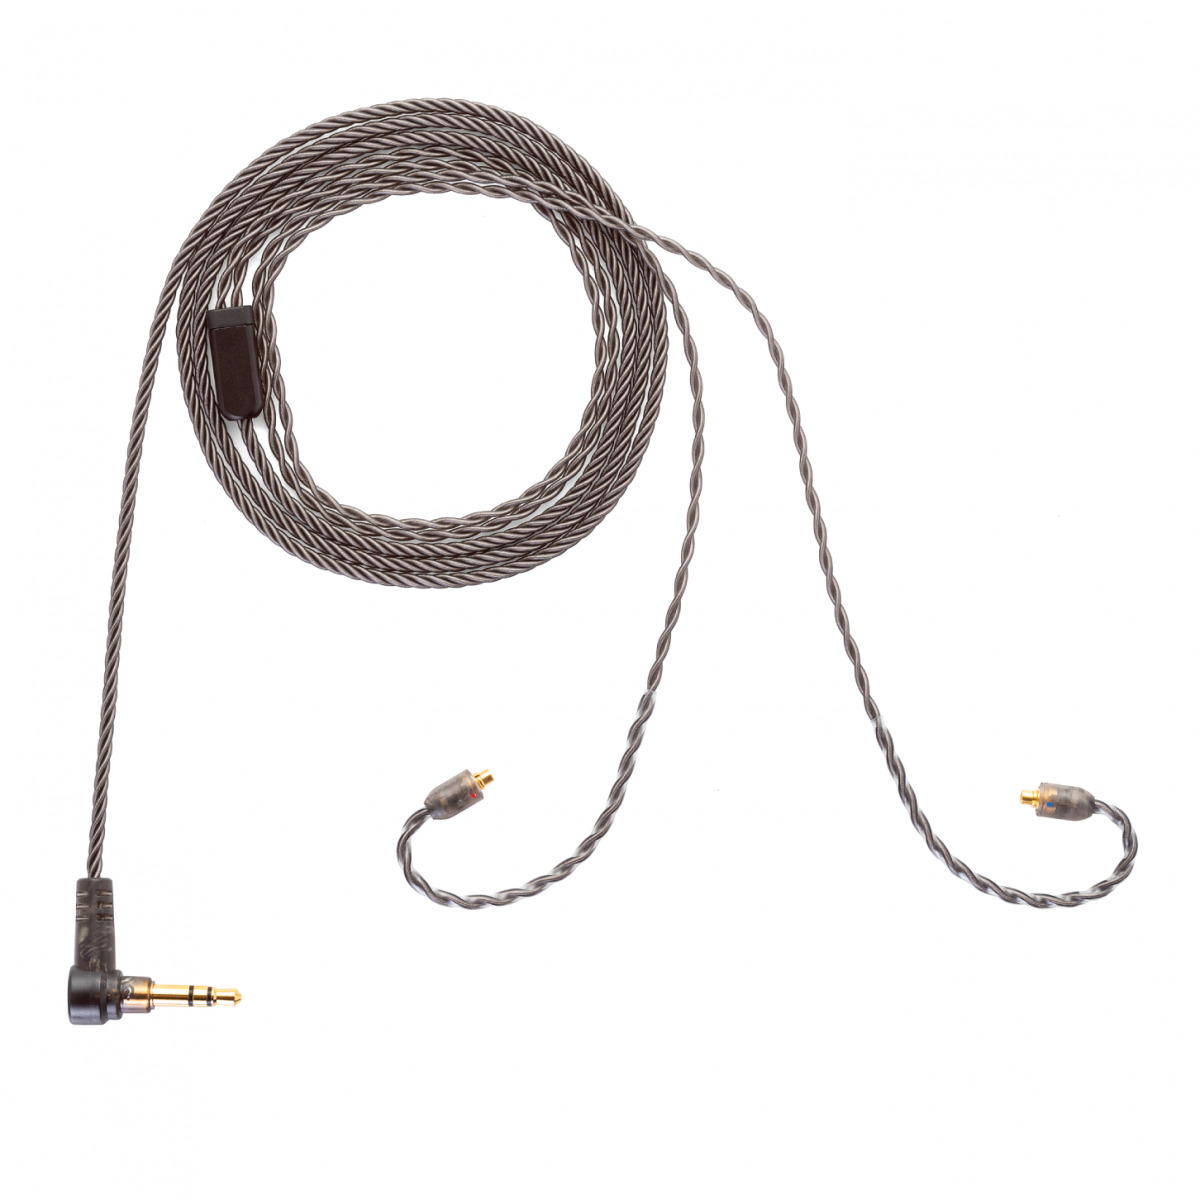 Smoky Litz Cable by Campfire Audio. Four Silver Plated Copper Conductors with Twist Weave in Smoky Gray PVC Jacket. New Custom Low Profile Beryllium Copper MMCX Connectors.